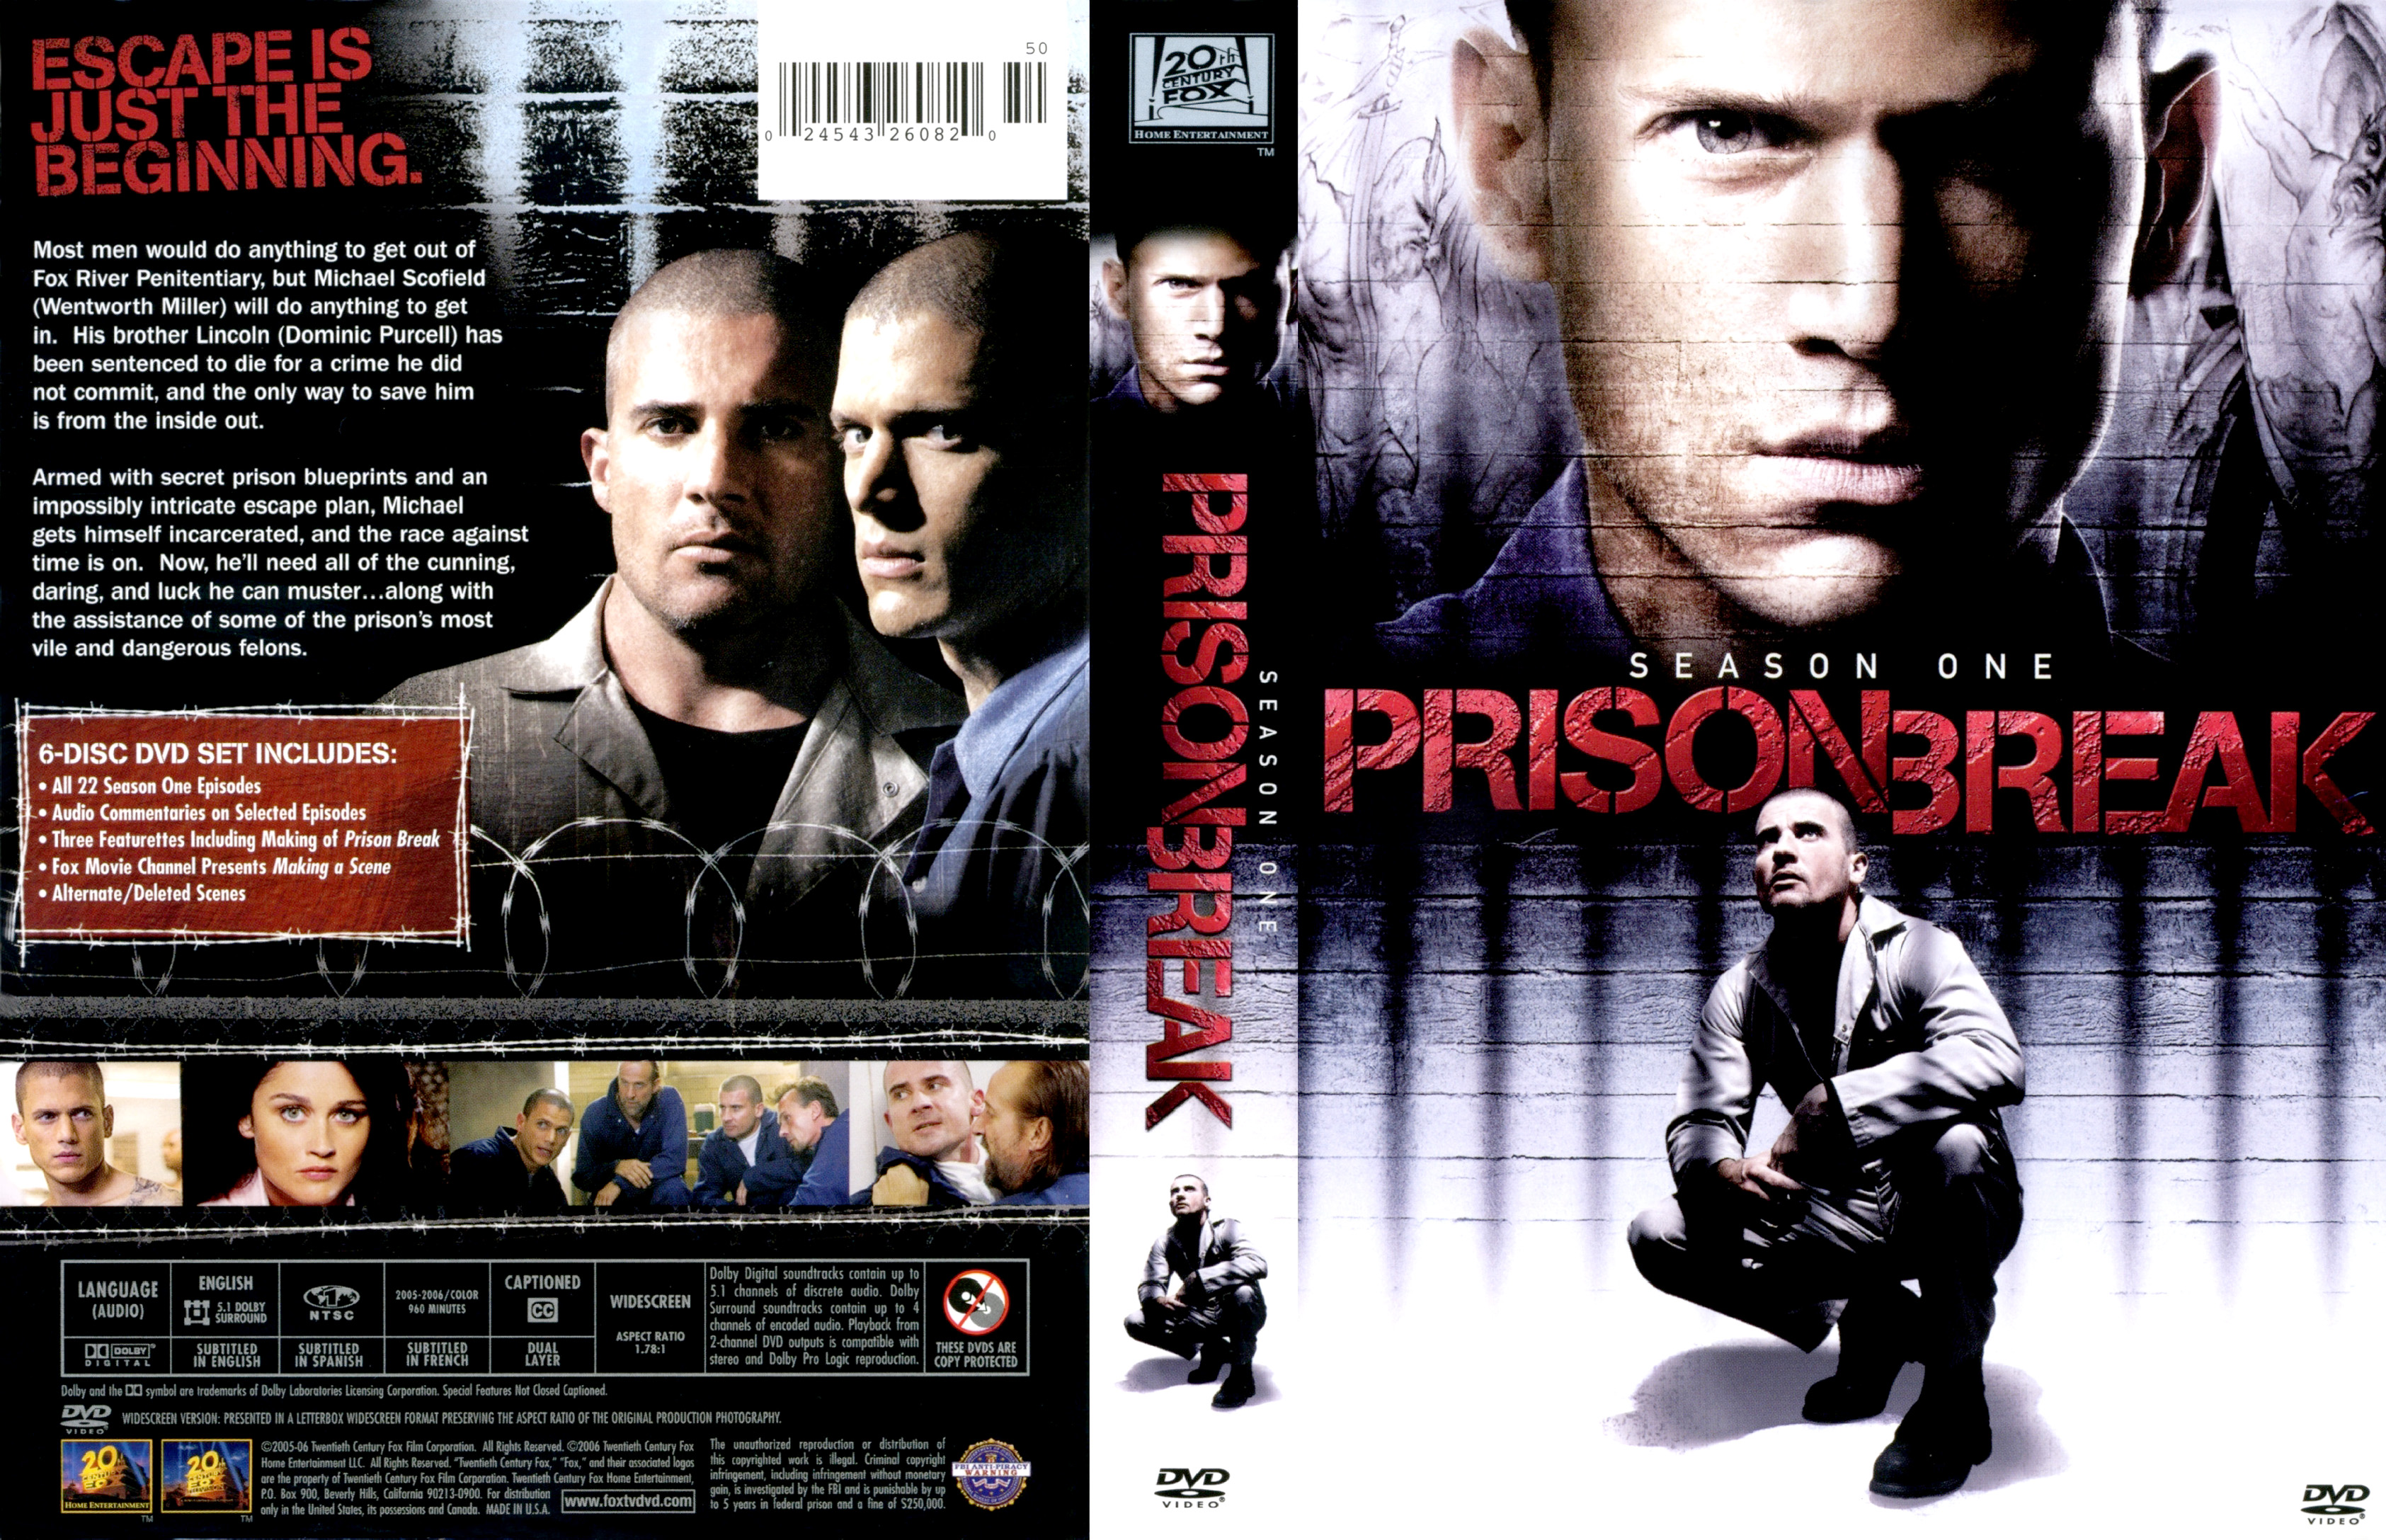 Prison Break Season 1 Dvd Covers Cover Century Over 500 000 Album Art Covers For Free